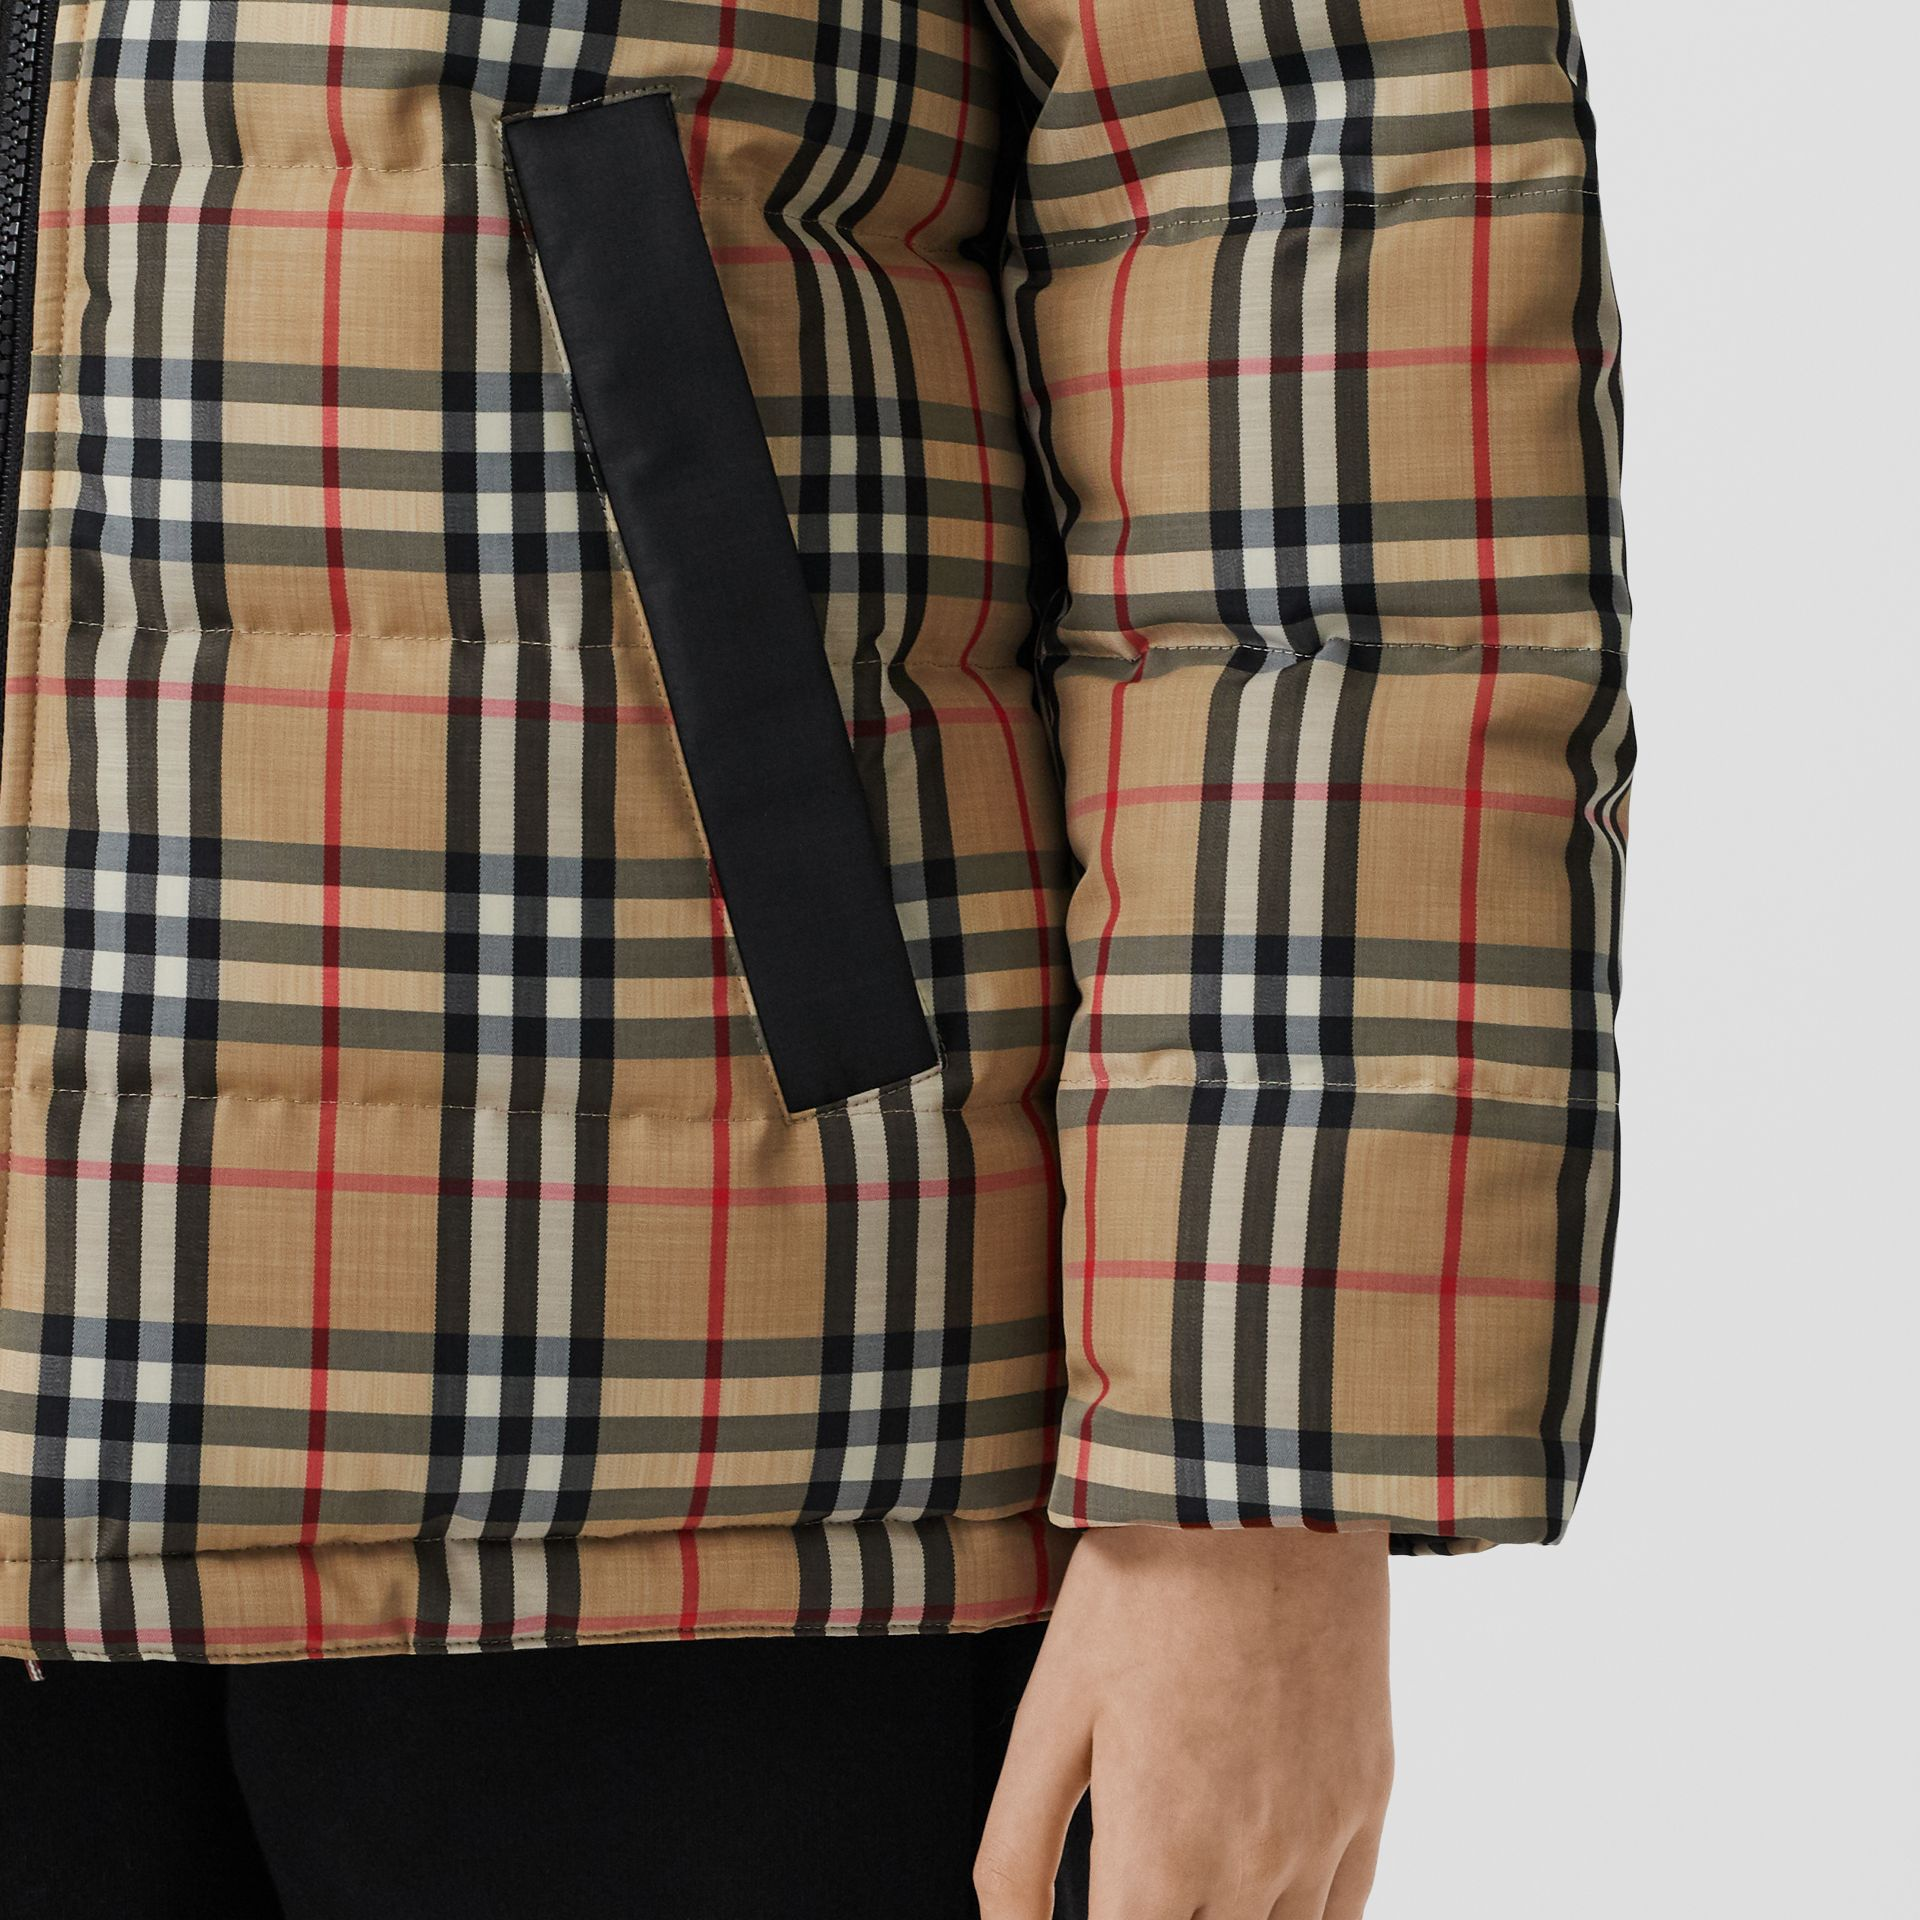 Veste en polyester recyclé Vintage check réversible (Beige D'archive) | Burberry - photo de la galerie 5